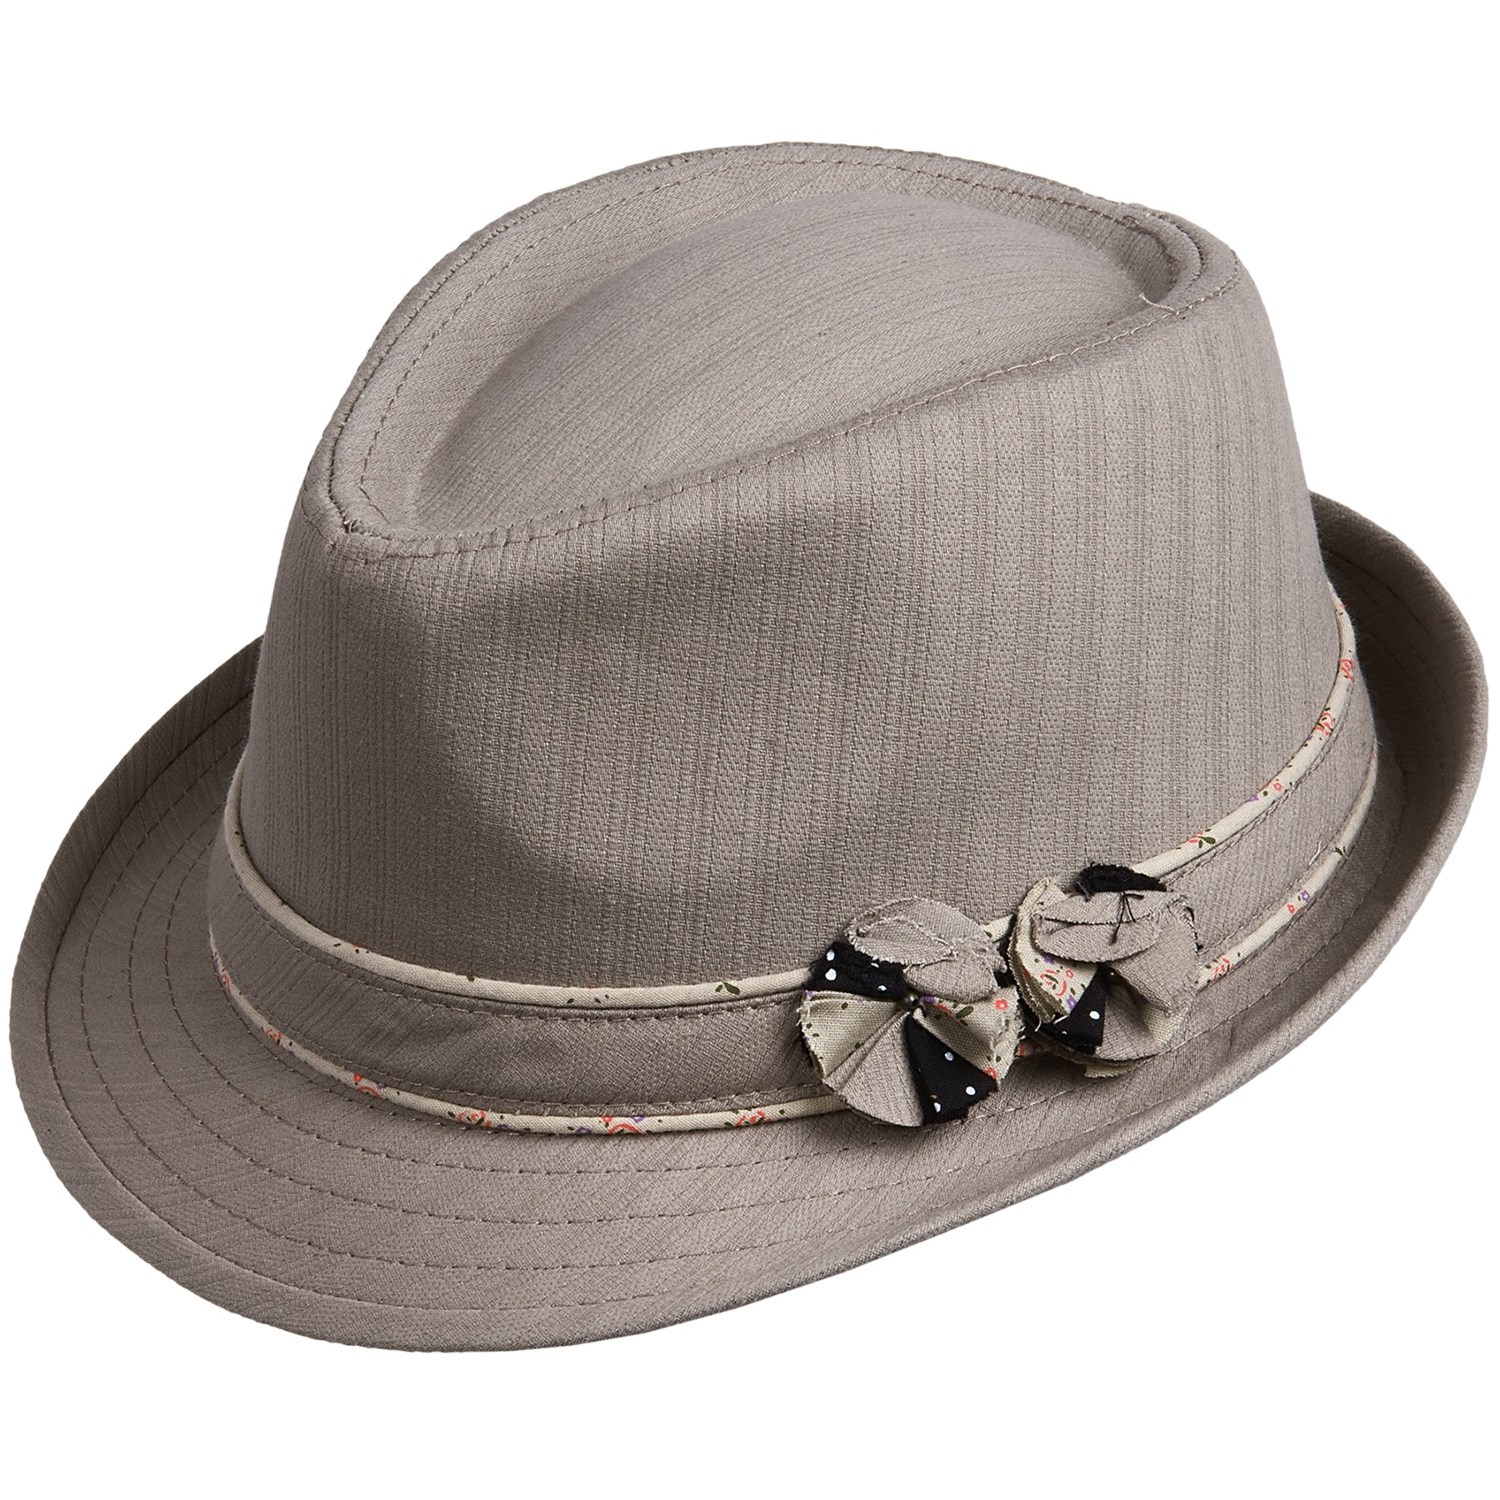 Women's Fedora Most people associate the fedora as a men's hat; during the turn of the 20 the century, fedoras were to men as cloche hats were to women. However, today the script has been flipped and the fedora has become a common sight for both men and women to wear.